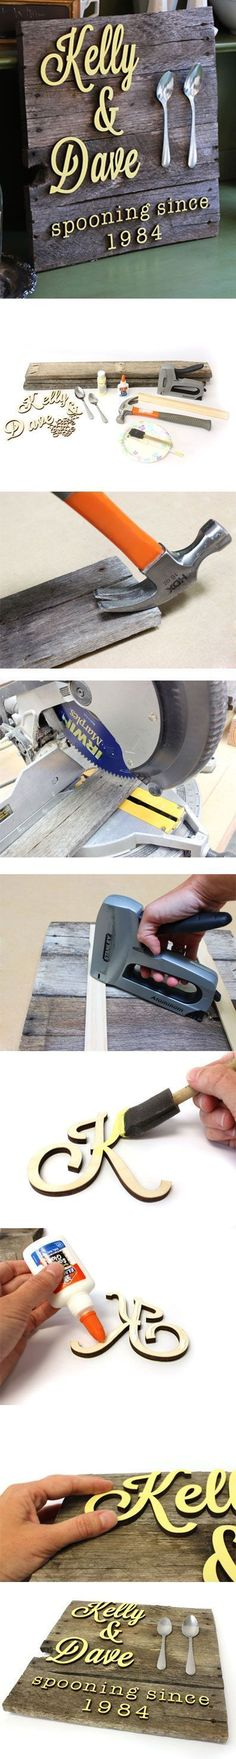 Plans of Woodworking Diy Projects - The Most Beautiful 101 DIY Pallet Projects To Take On Get A Lifetime Of Project Ideas & Inspiration! Pallet Ideas, Pallet Crafts, Pallet Art, Diy Pallet Projects, Pallet Signs, Woodworking Projects Diy, Woodworking Plans, Wood Crafts, Wood Projects